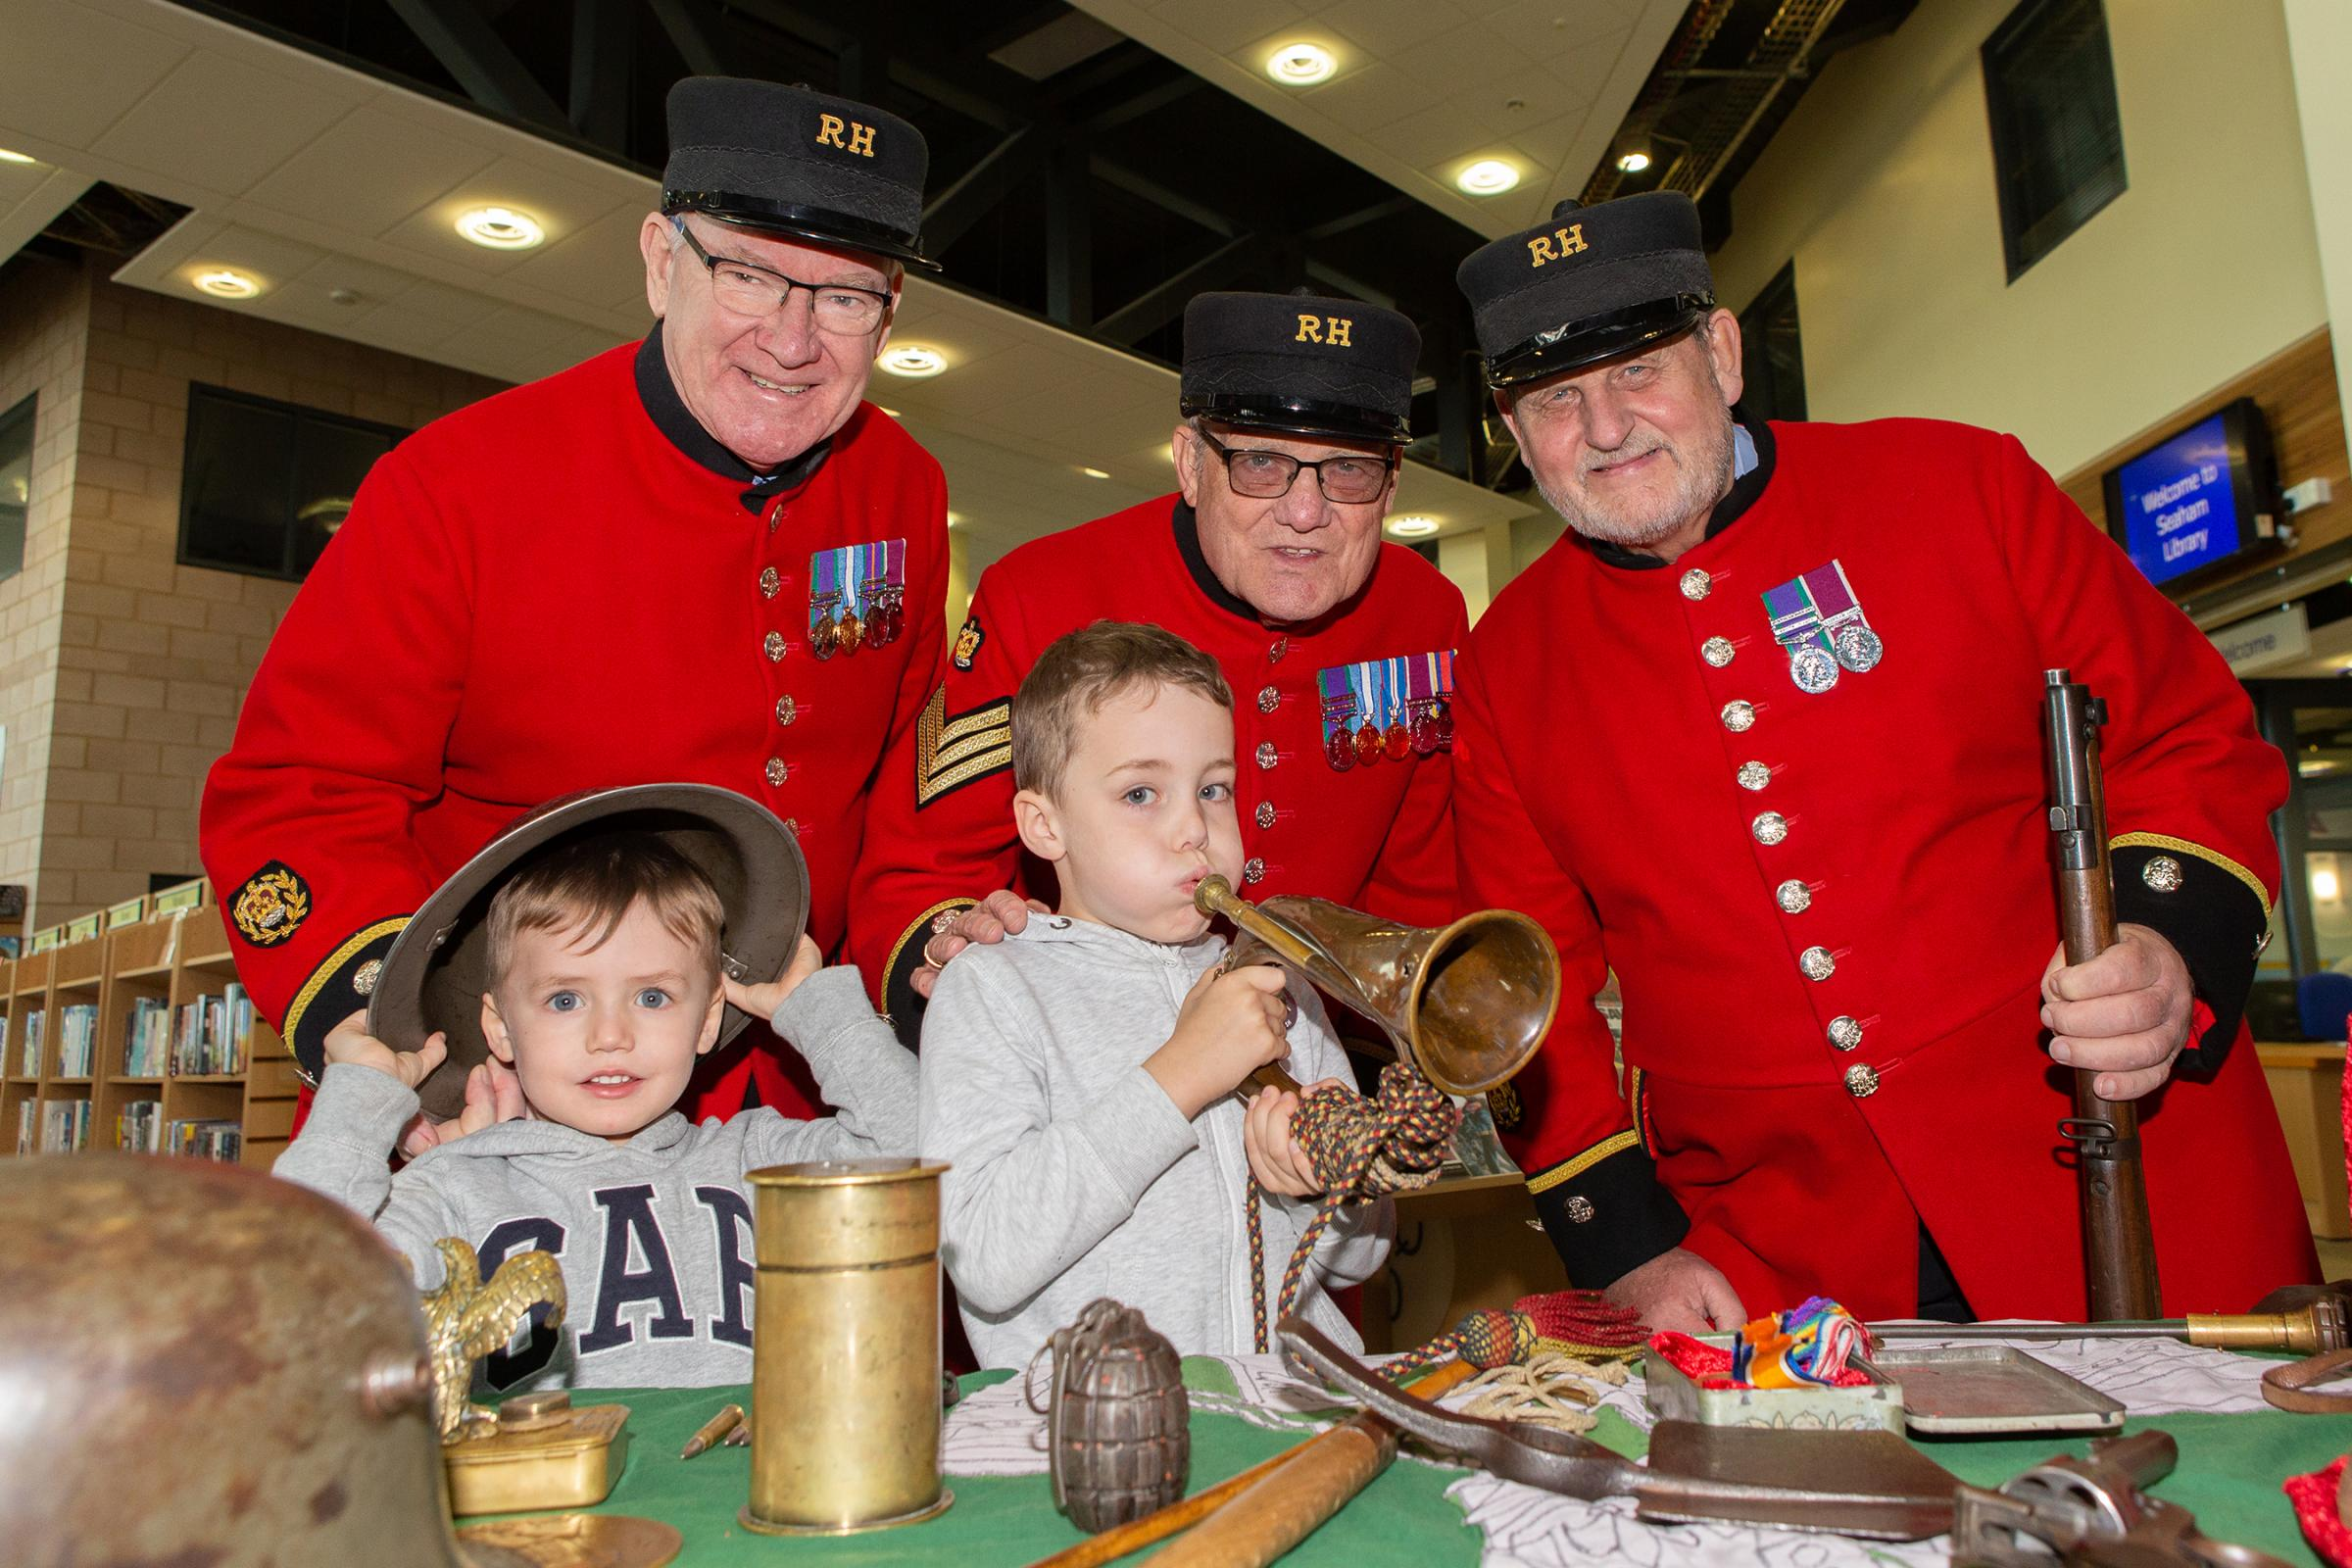 BUGLE'S CALL: Chelsea Pensioners visiting the When the Bugle Calls exhibition during their trip to Seaham